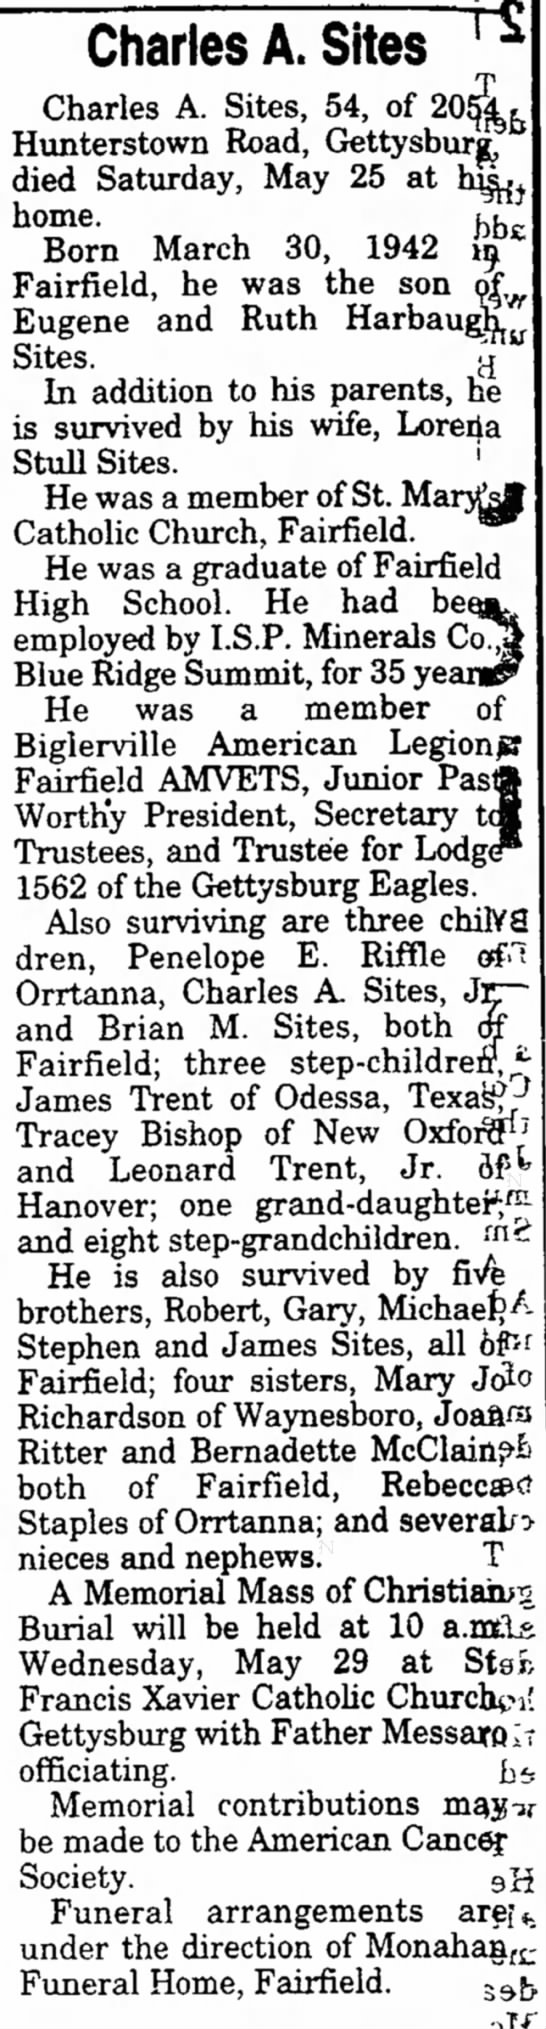 Charles A. Sites, son of Eugene and Ruth Harbaugh Sites -